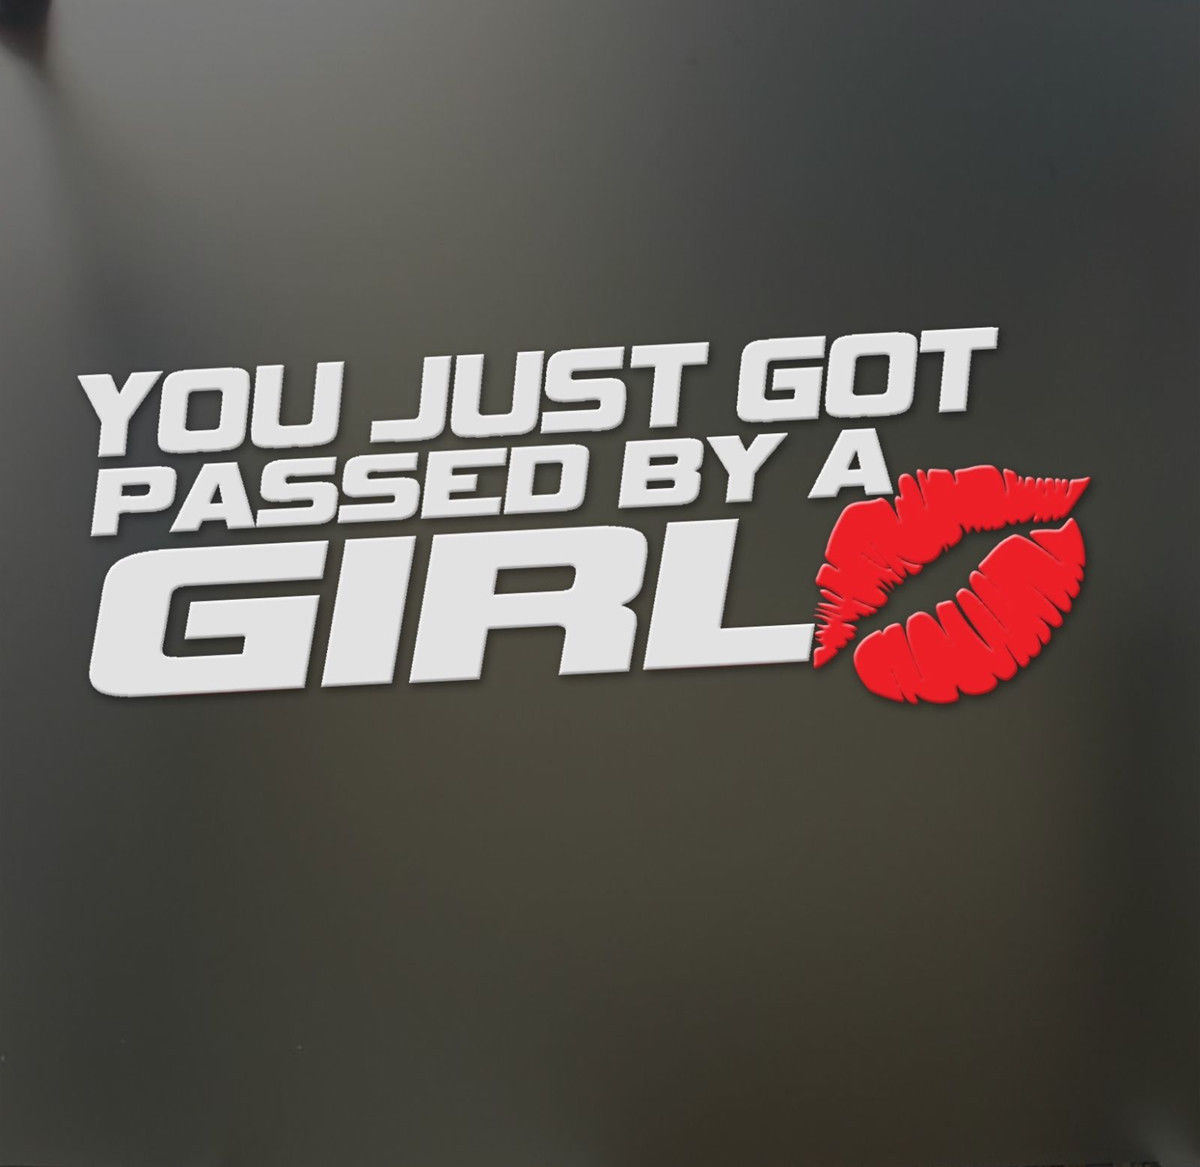 High Quality Girl Car PromotionShop For High Quality Promotional - Car sticker decals vinyl girl